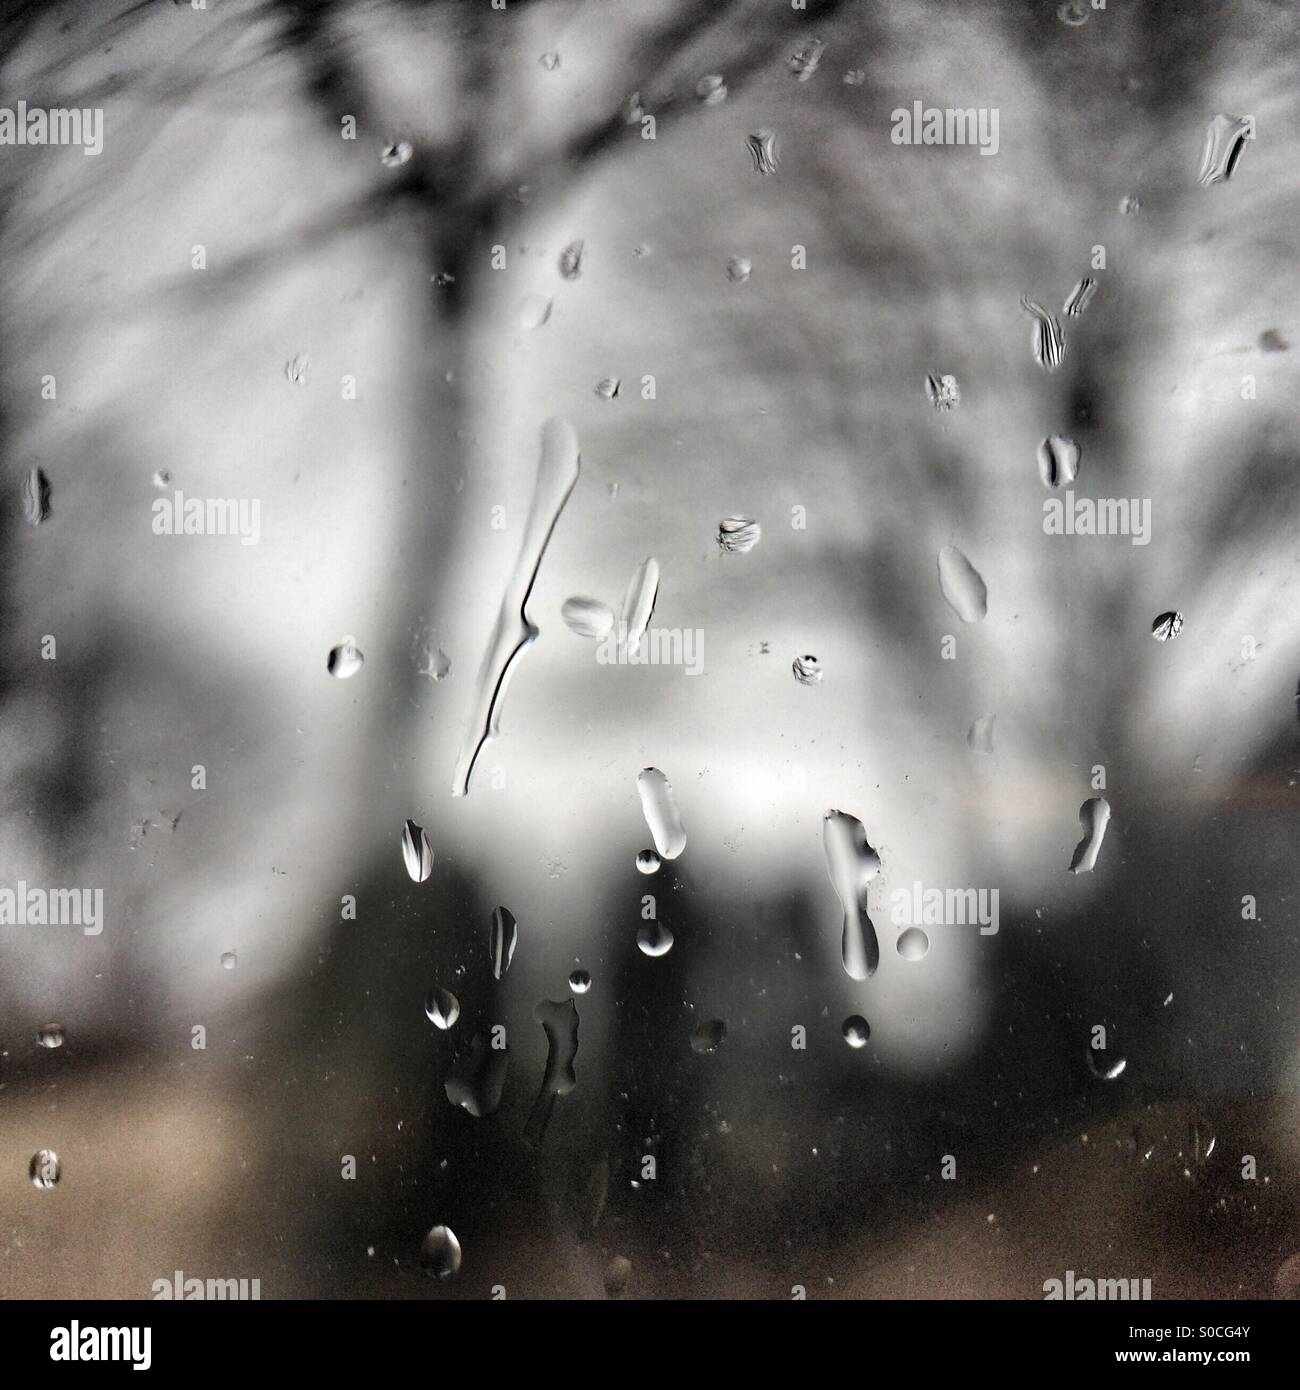 Sleet spatters on a window pane in spring - Stock Image